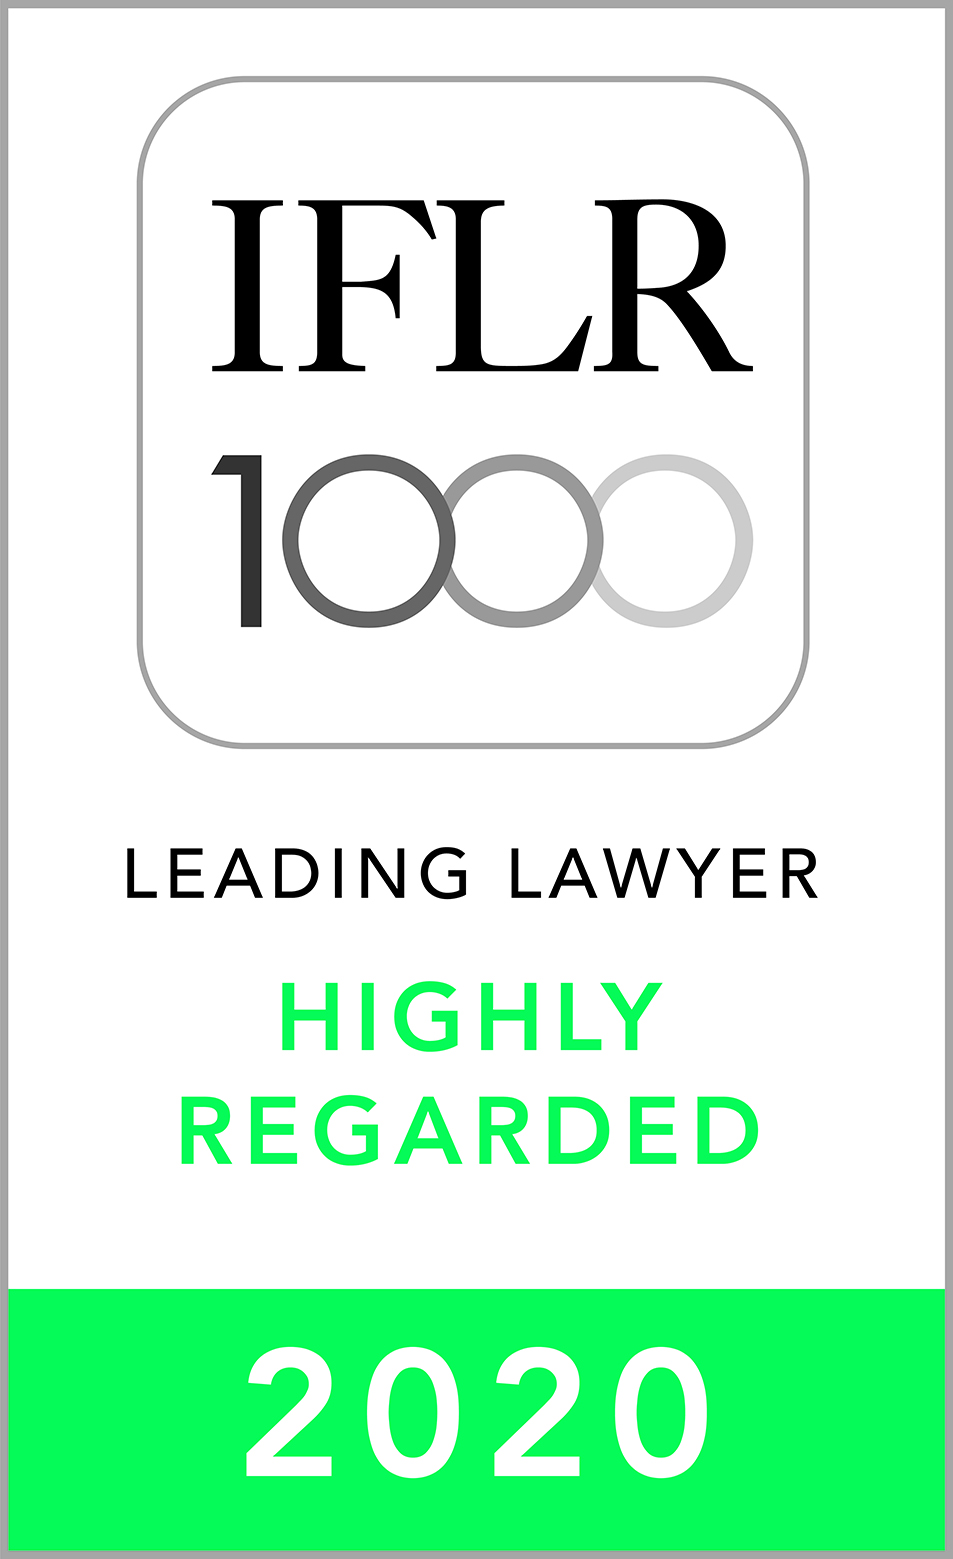 Recognised as Highly Regarded Leading Lawyer in Financial & Corporate Law by IFLR1000, LC Lawyers LLP, Rossana Chu, 2020